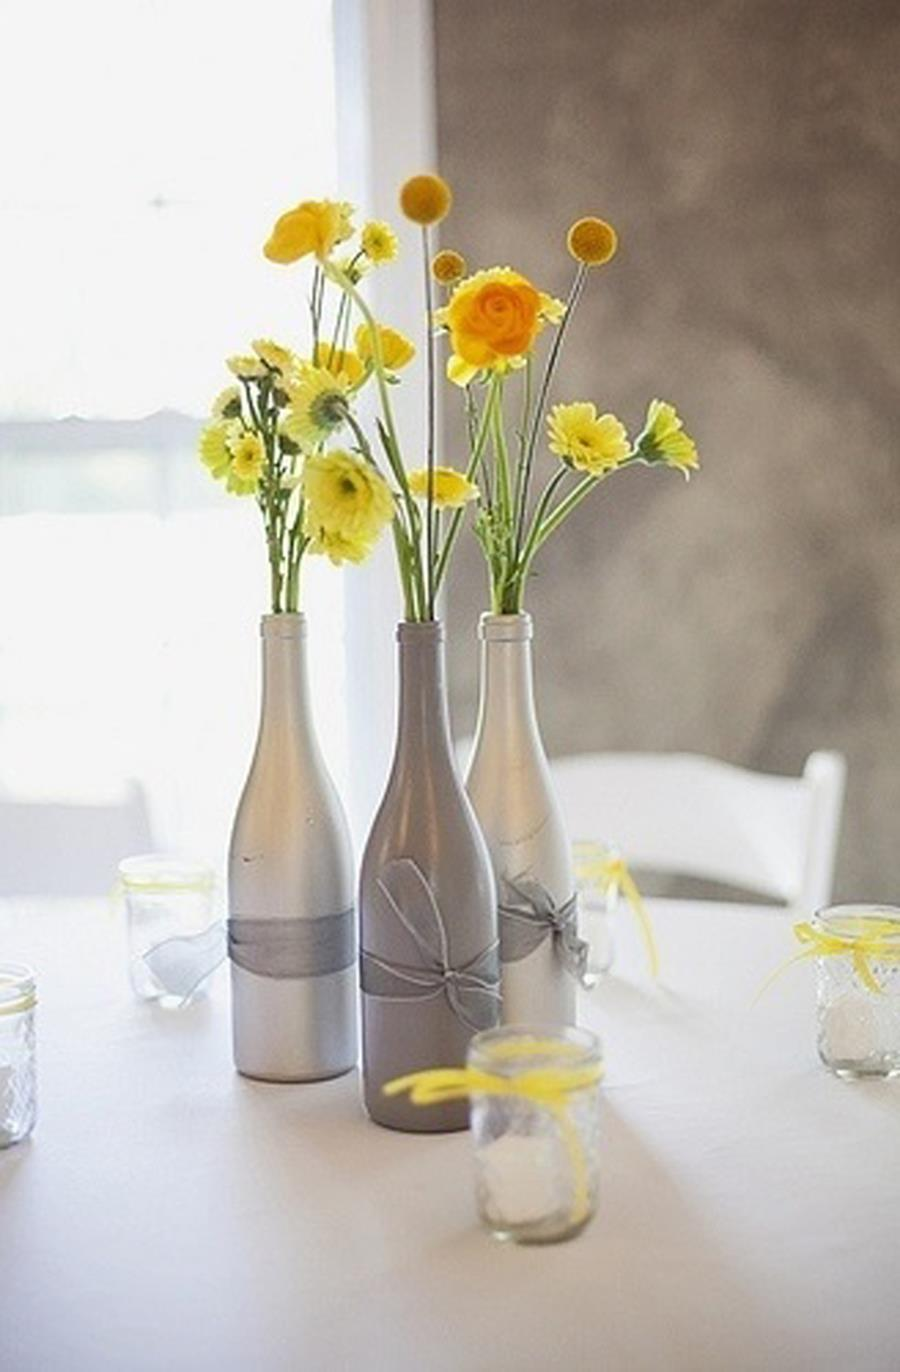 46 DIY Simple but Beautiful Wine Bottle Decor Ideas 36